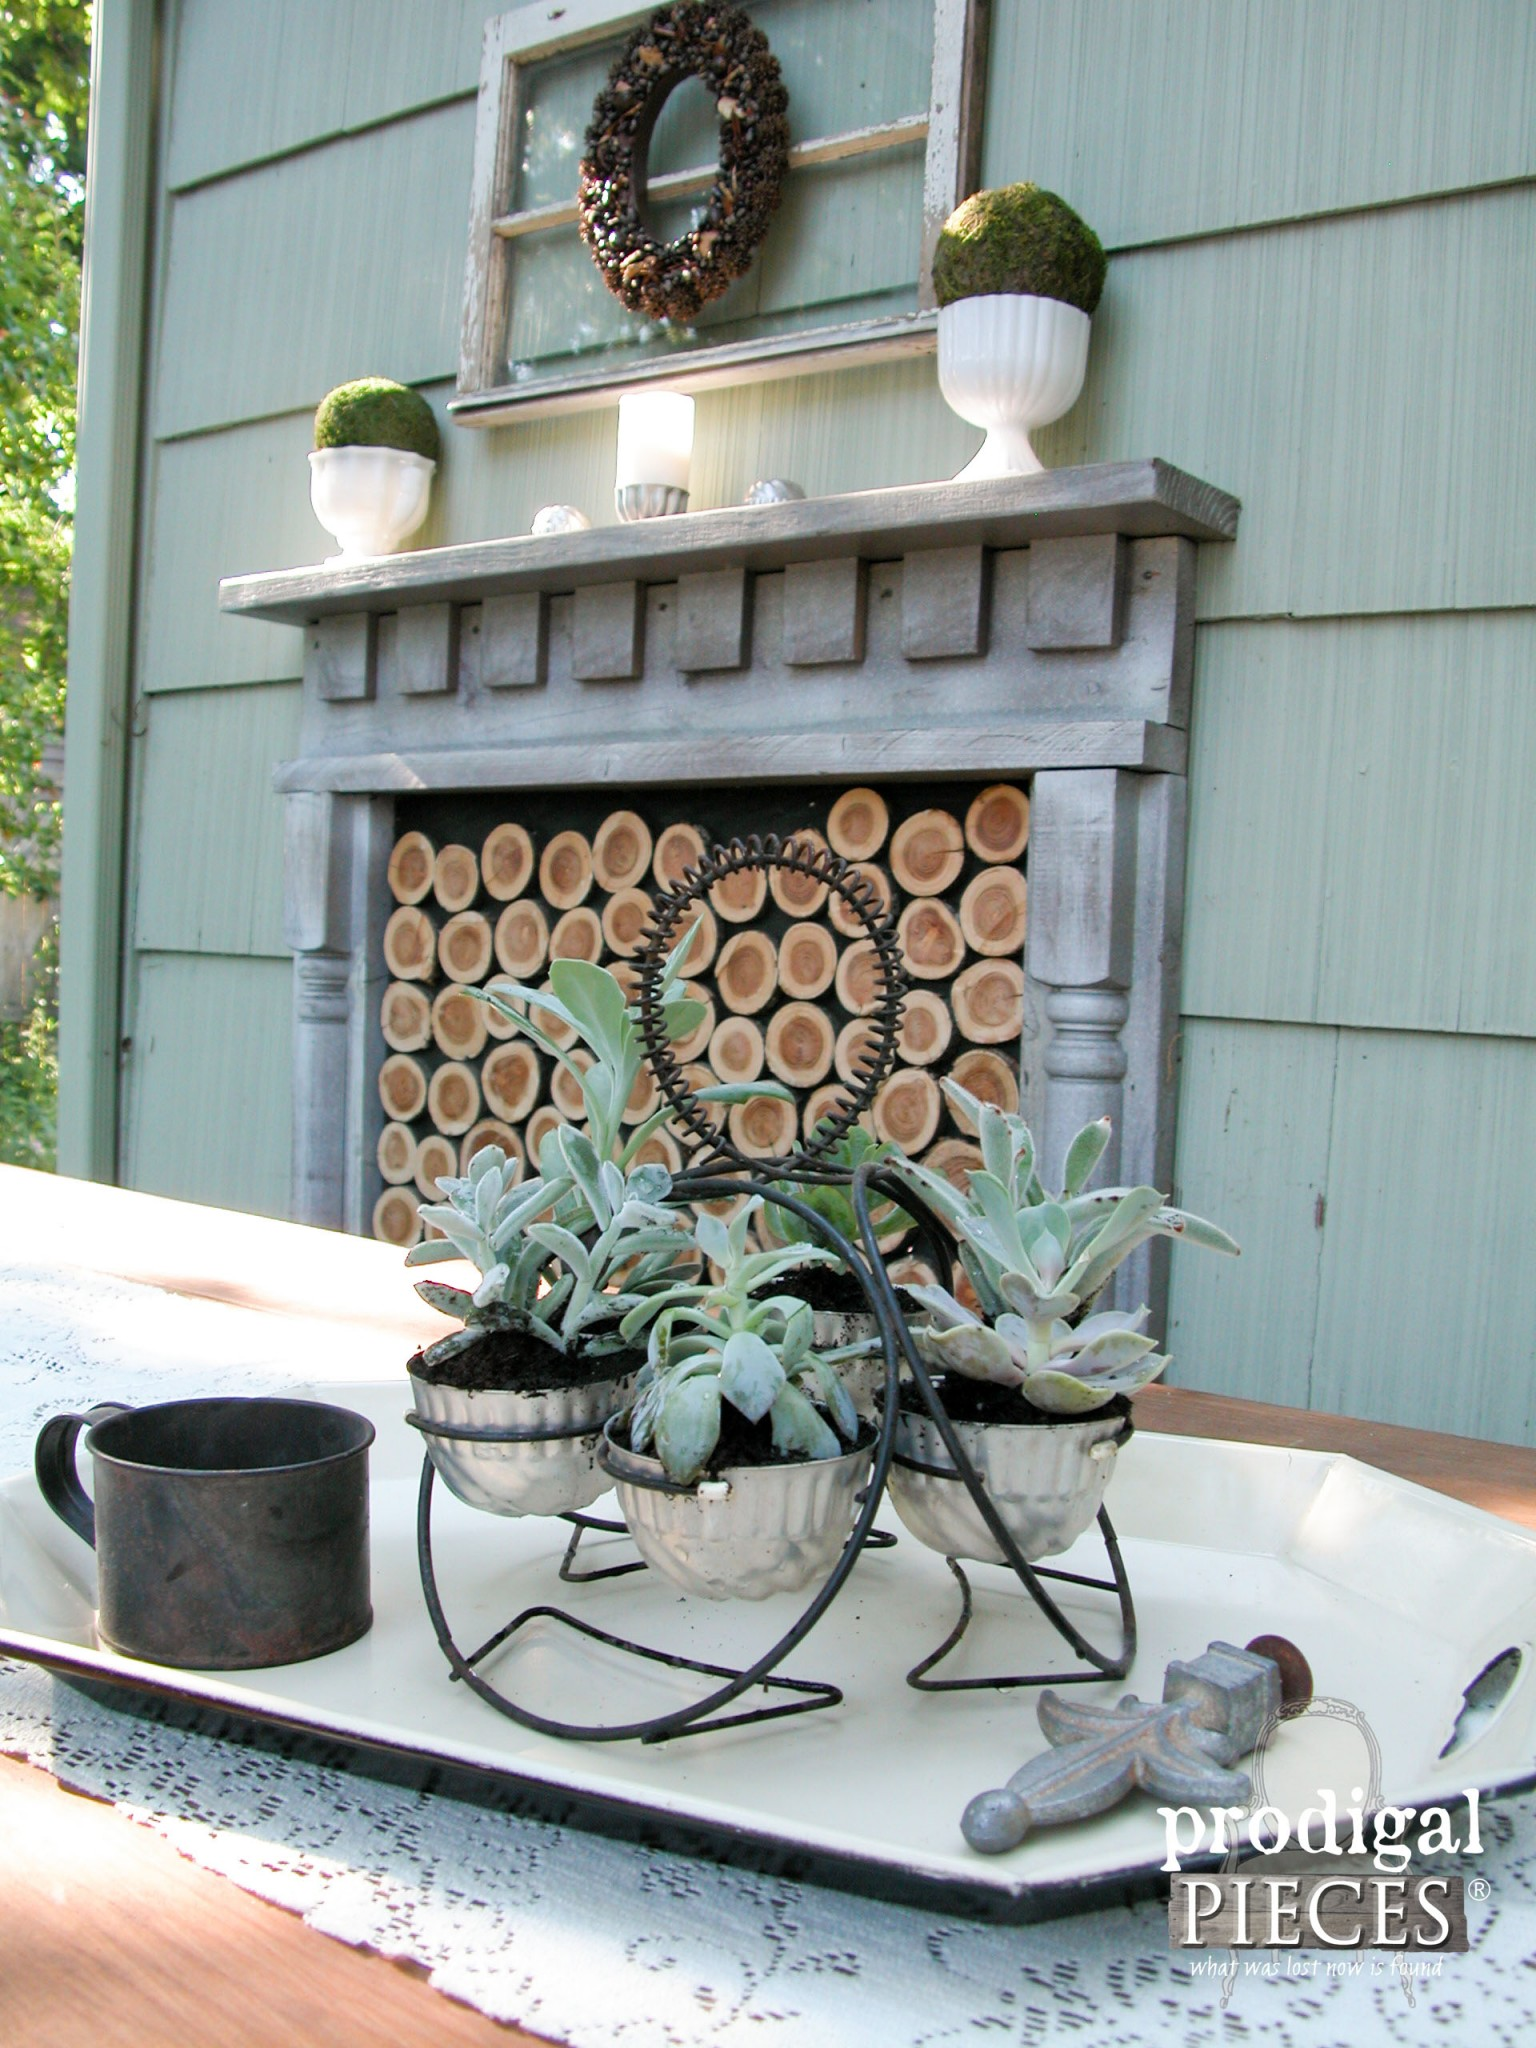 Succulents in Repurposed Planter on Patio by Prodigal Pieces | www.prodigalpieces.com